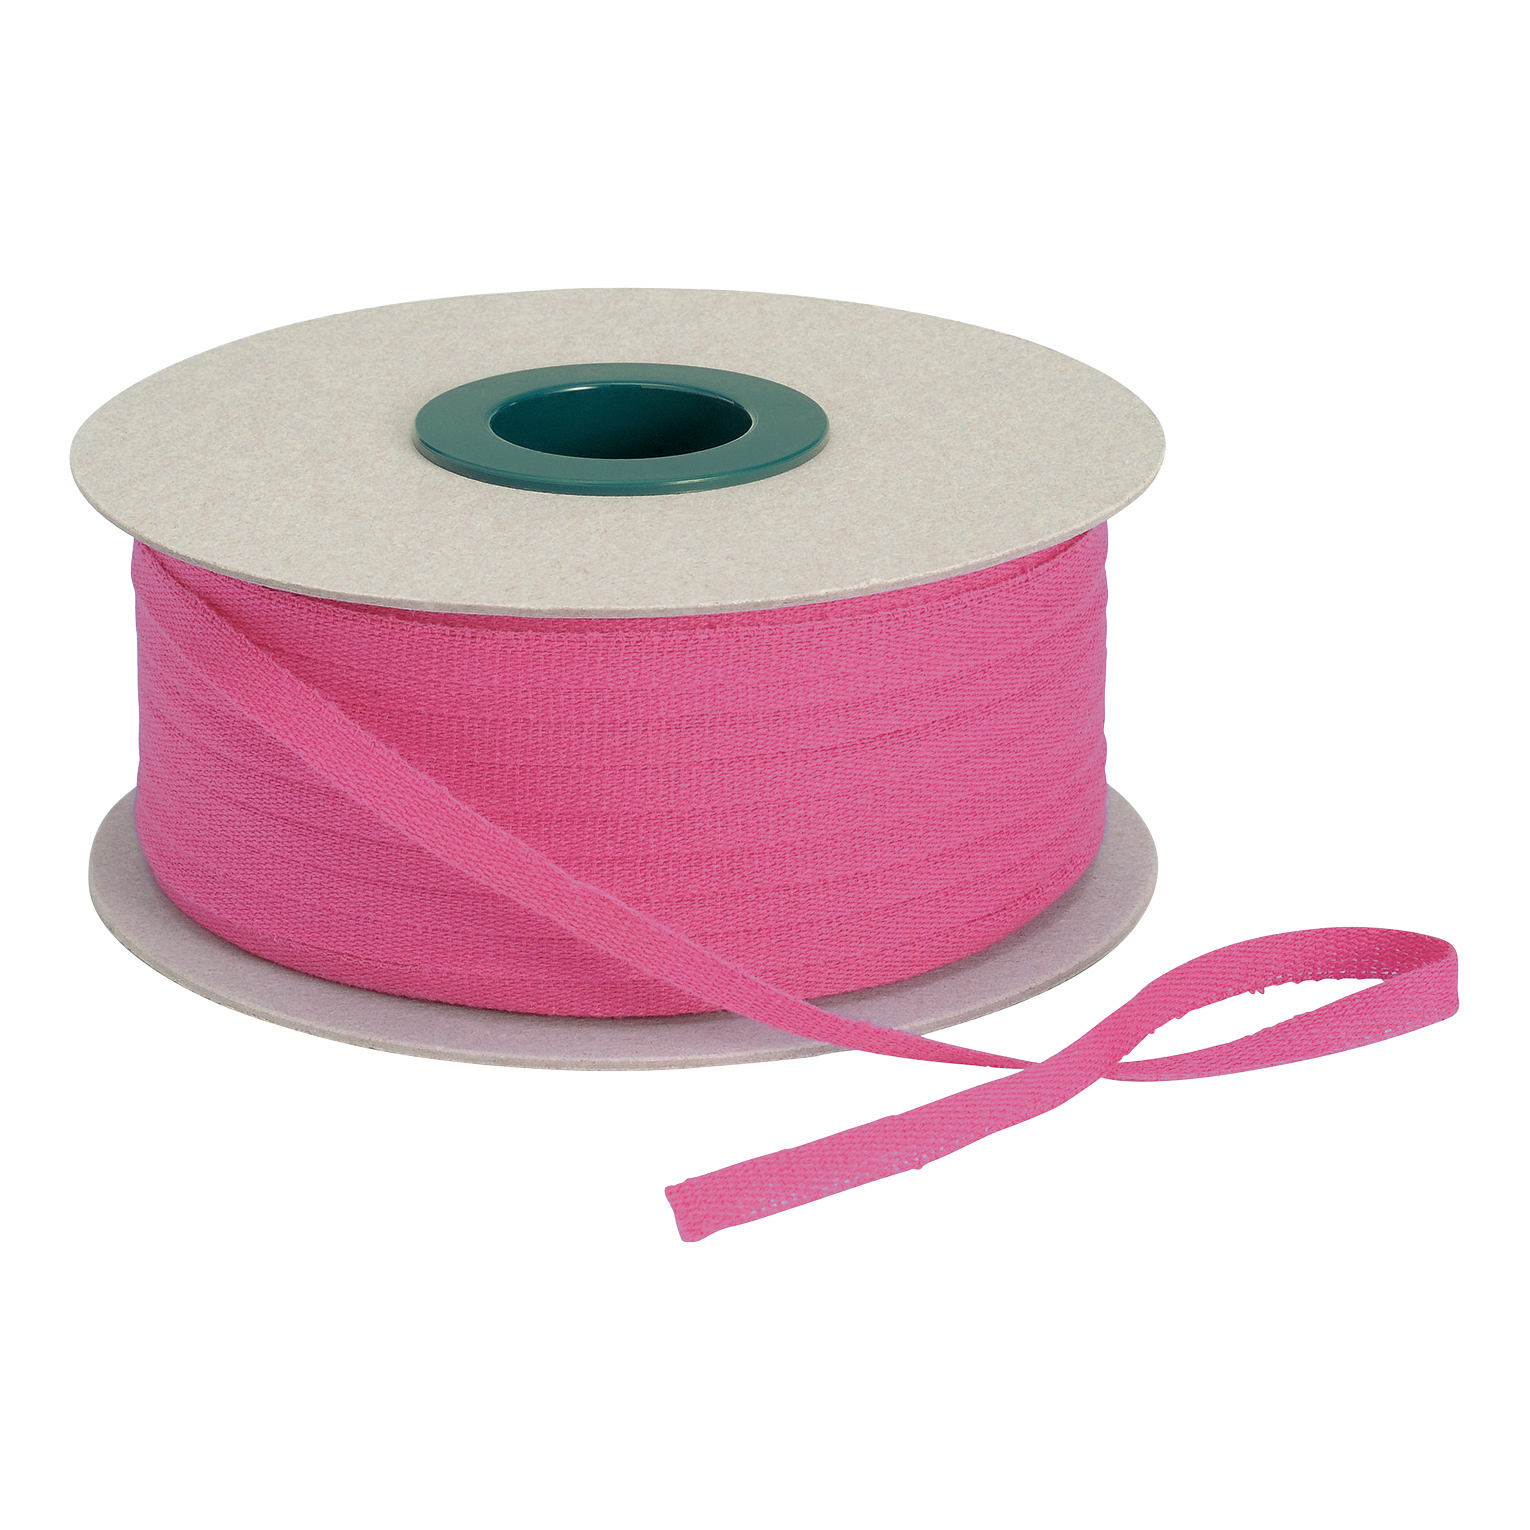 Ornamental trimmings 5 Star Office Legal Tape Reel 6mmx150m Pink